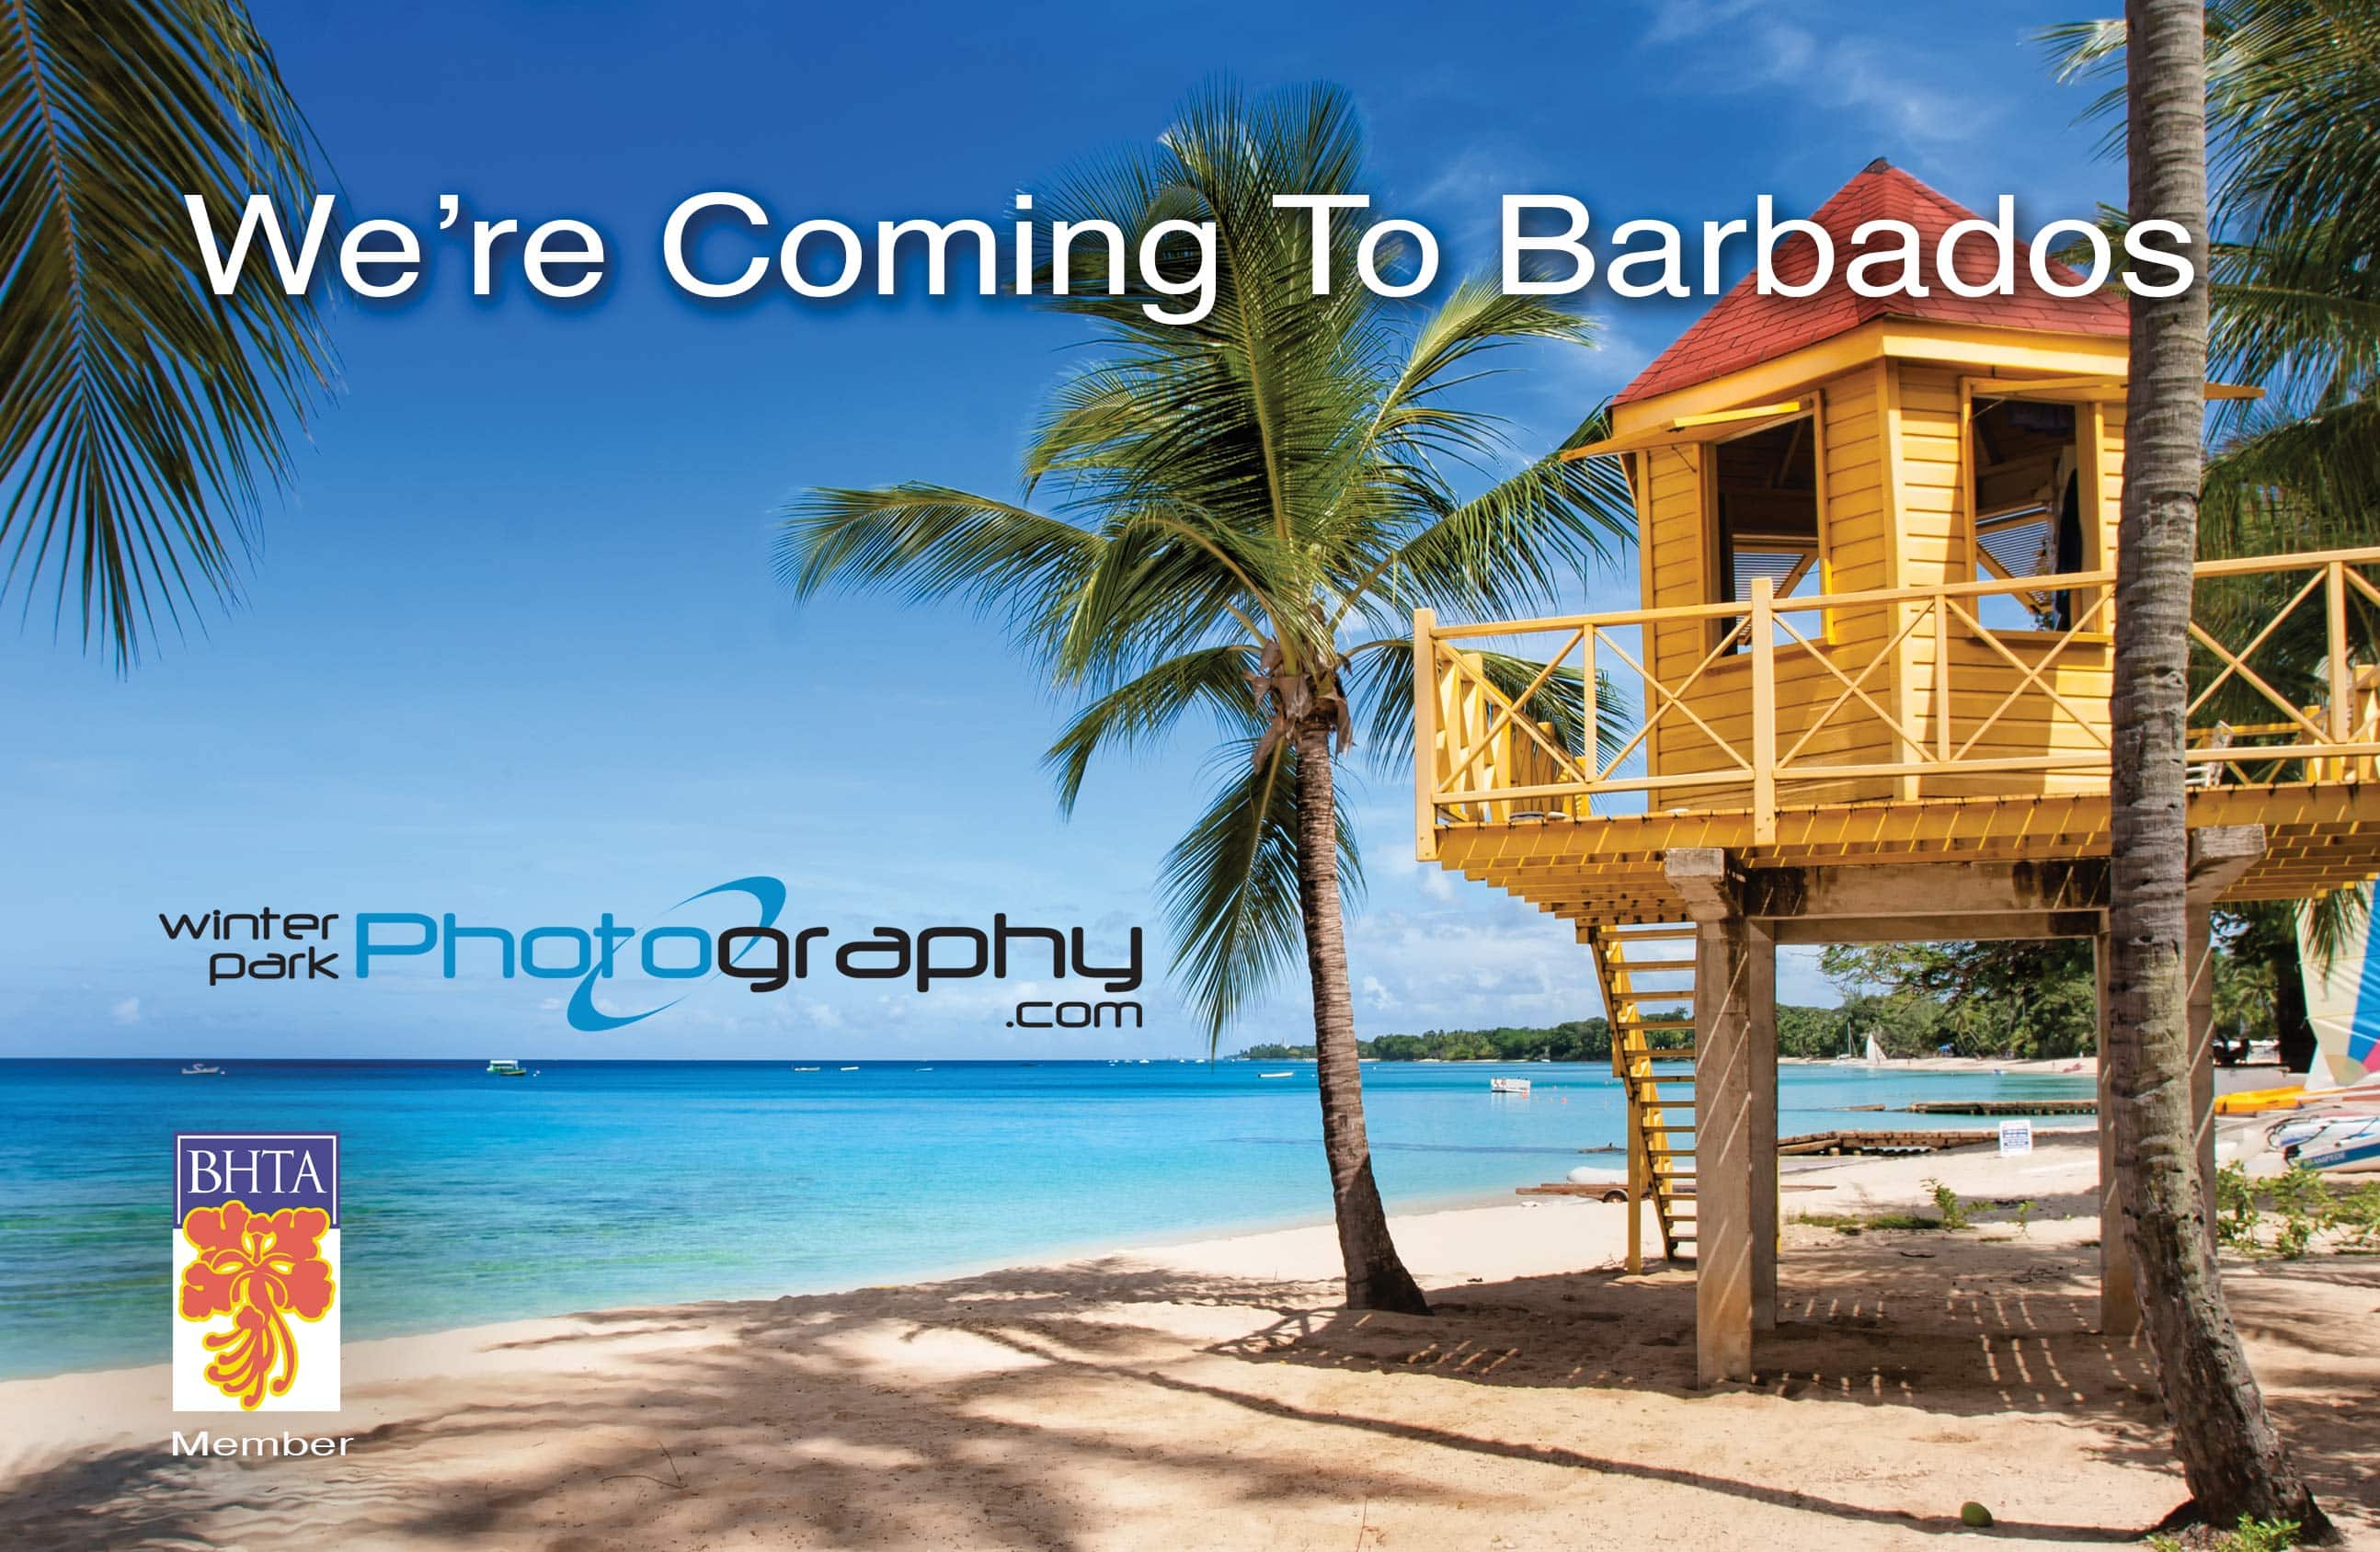 Winter Park Photography is Coming to Barbados